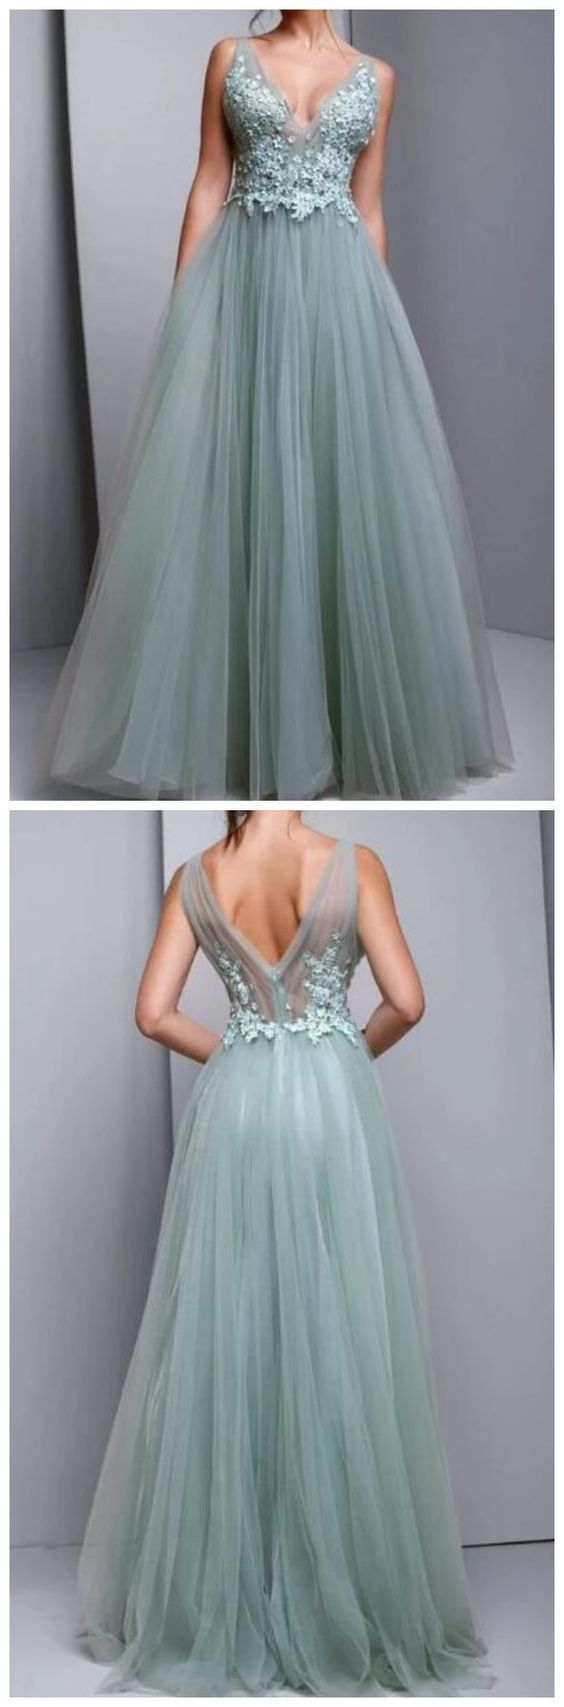 Tulle Evening Dress,Prom Dresses